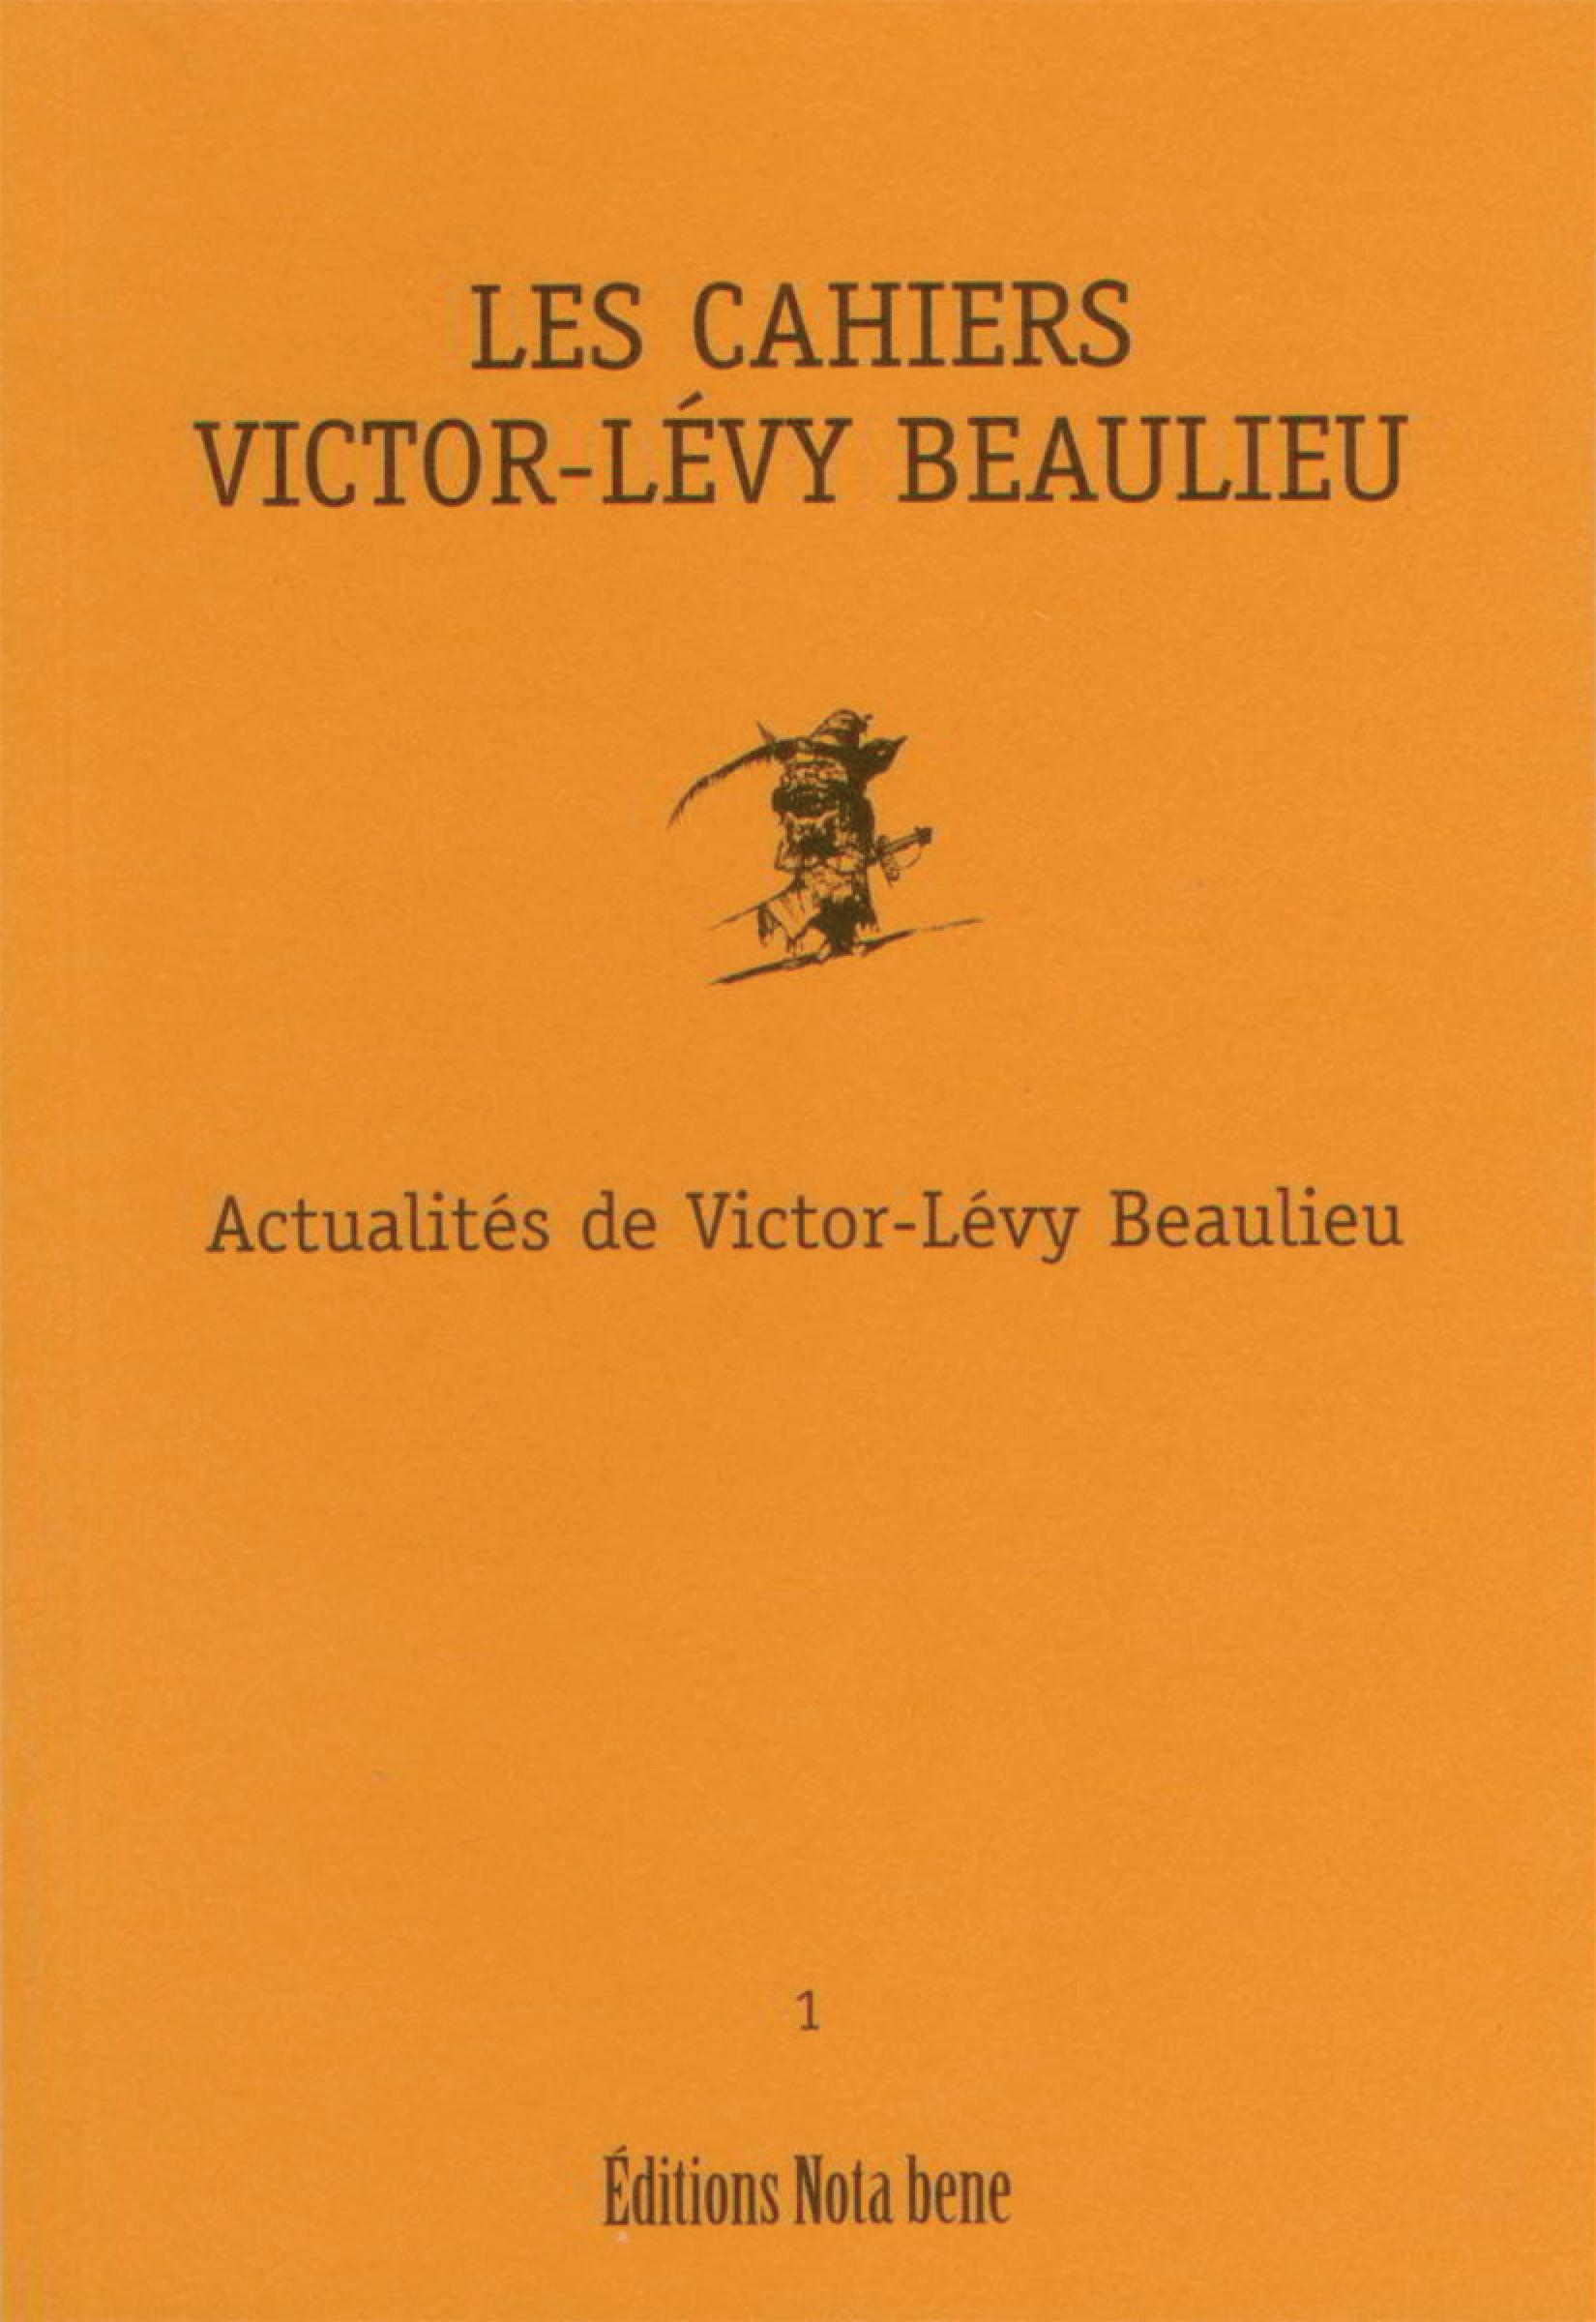 Les Cahiers Victor-Lévy Bea...